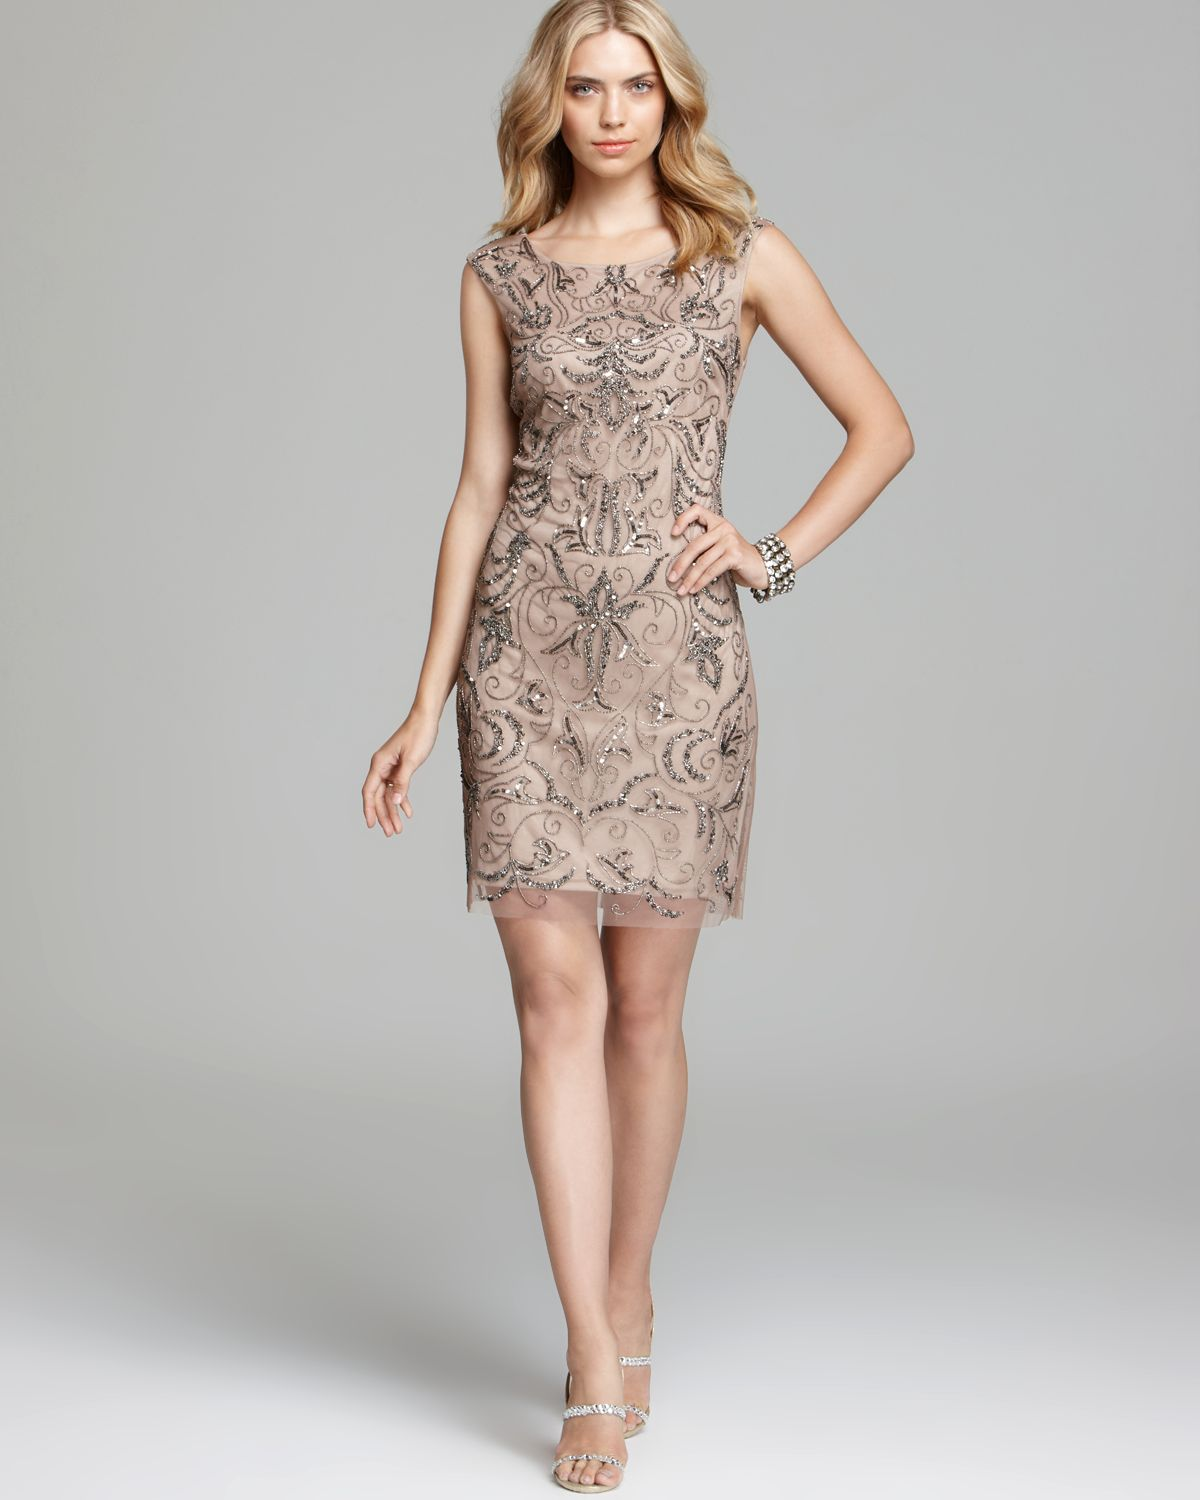 Lyst - Adrianna Papell Mesh Sheath Dress - Beaded in Natural